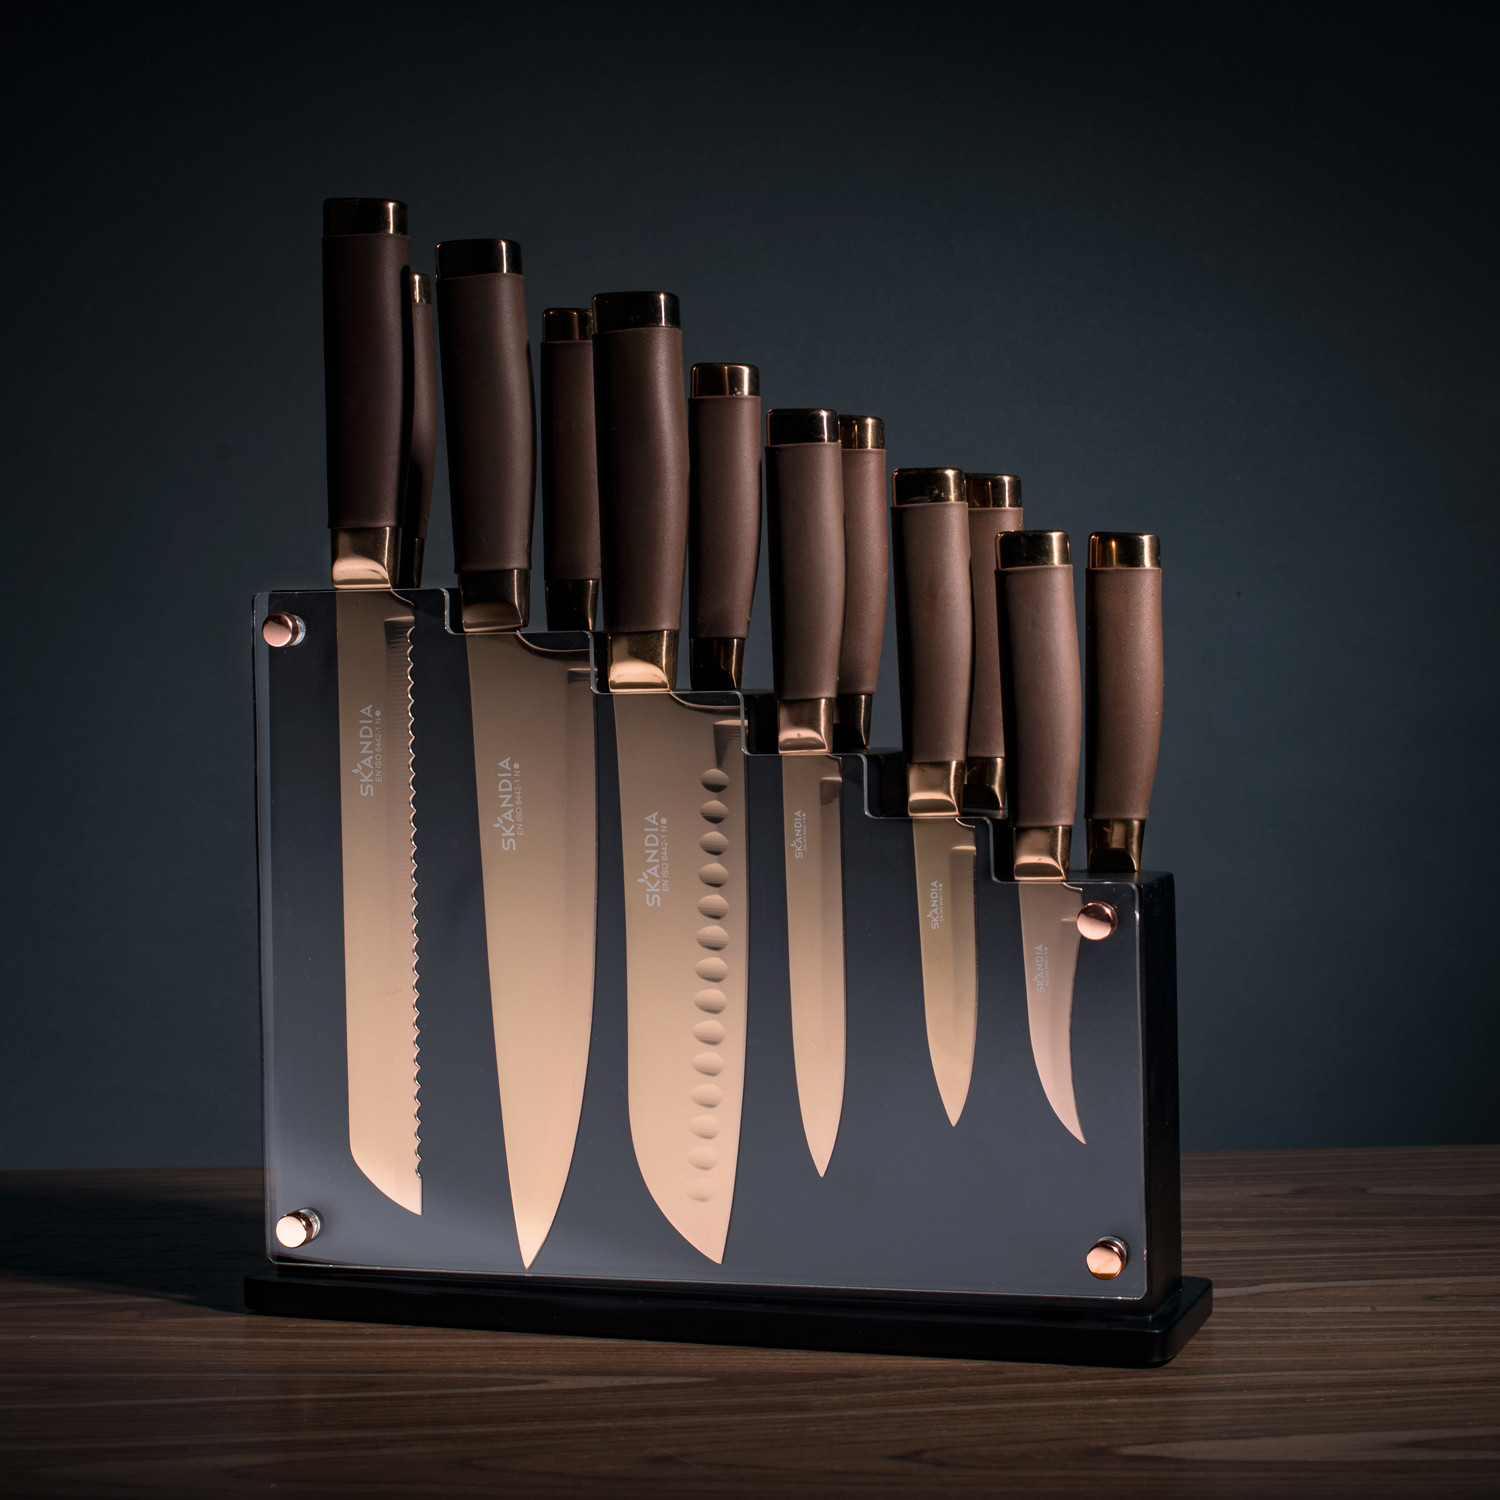 Cool Knife Block Sets Skandia Forte 13 Piece Knife Block Set Petagadget